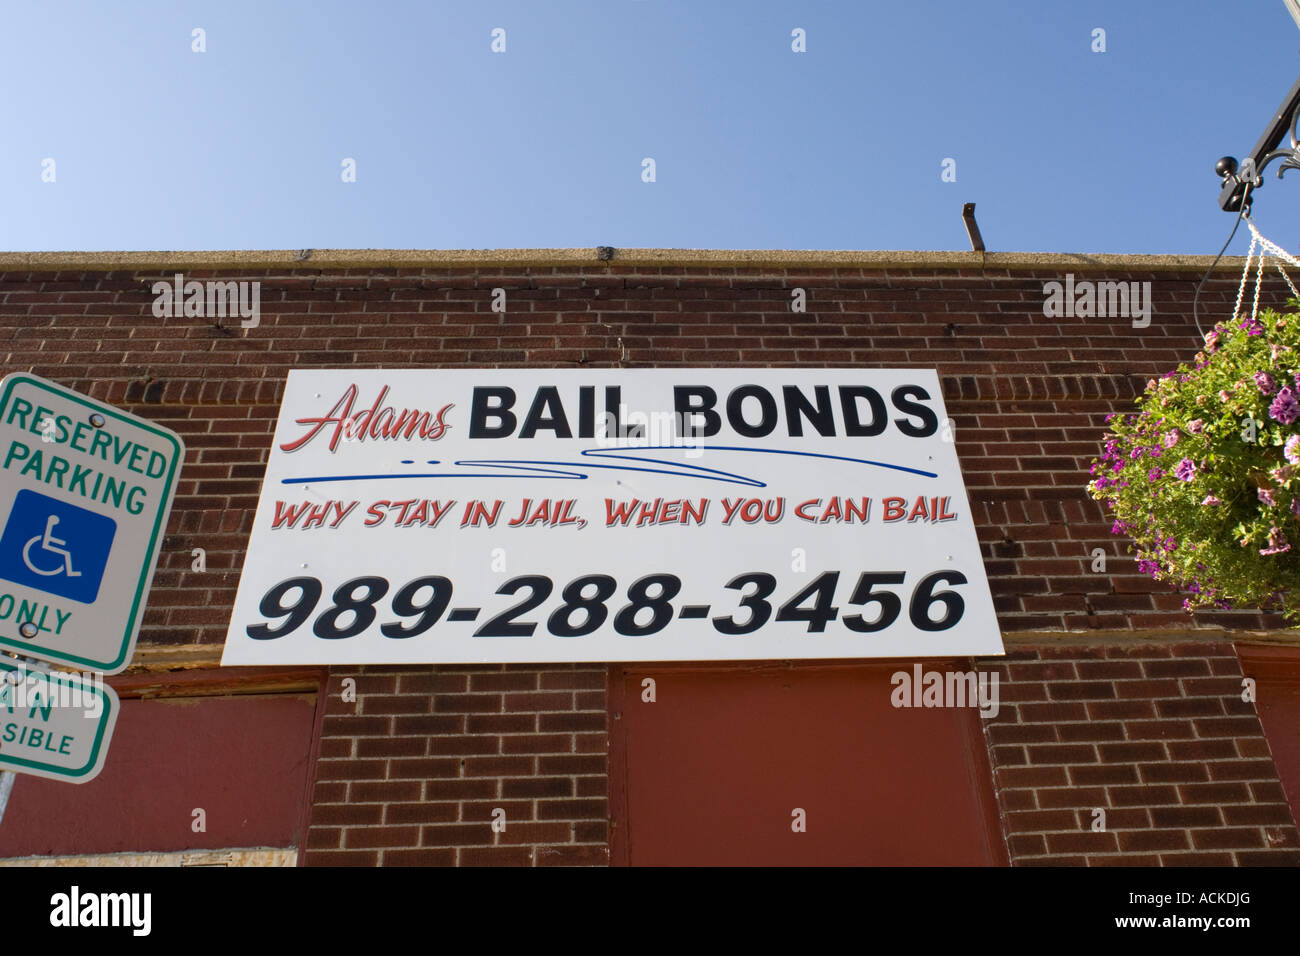 Building with sign reading Adams Bail Bonds Why stay in jail when you can bail - Stock Image